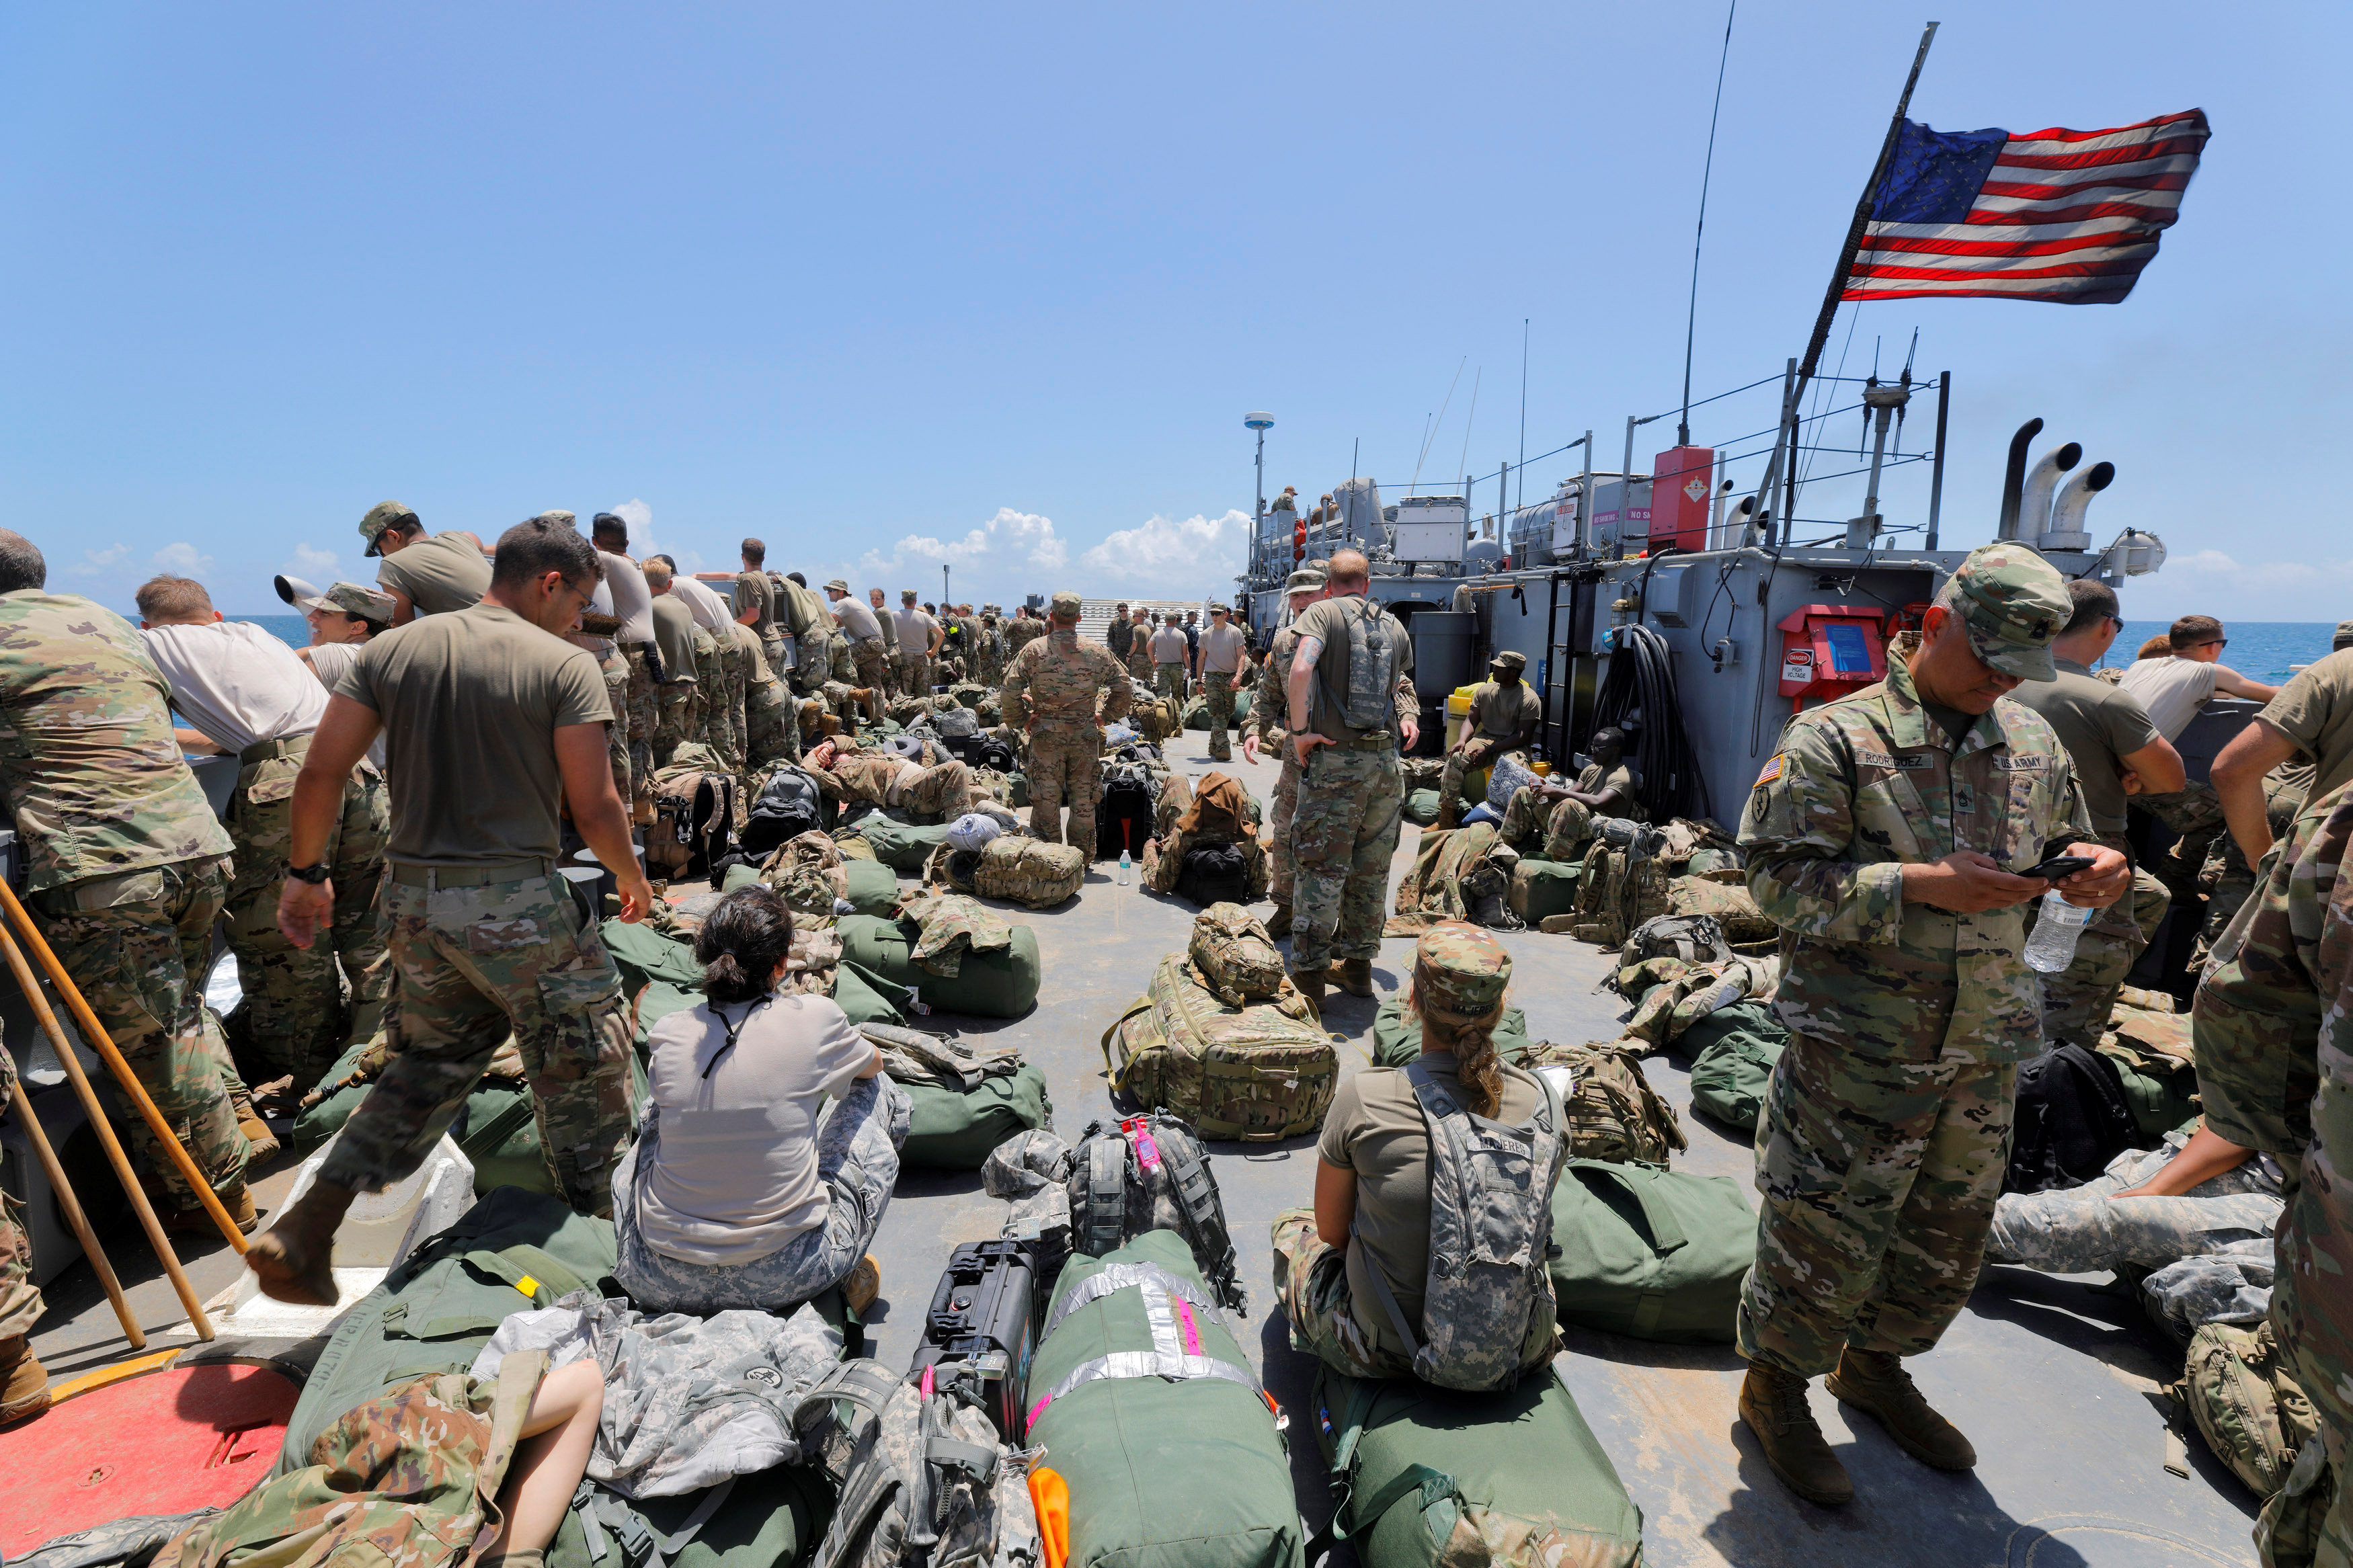 The deck of a U.S. Navy landing craft is crowded with Army soldiers and their belongings as they are evacuated in advance of Hurricane Maria, off St. Thomas shore, U.S. Virgin Islands September 17, 2017. REUTERS/Jonathan Drake